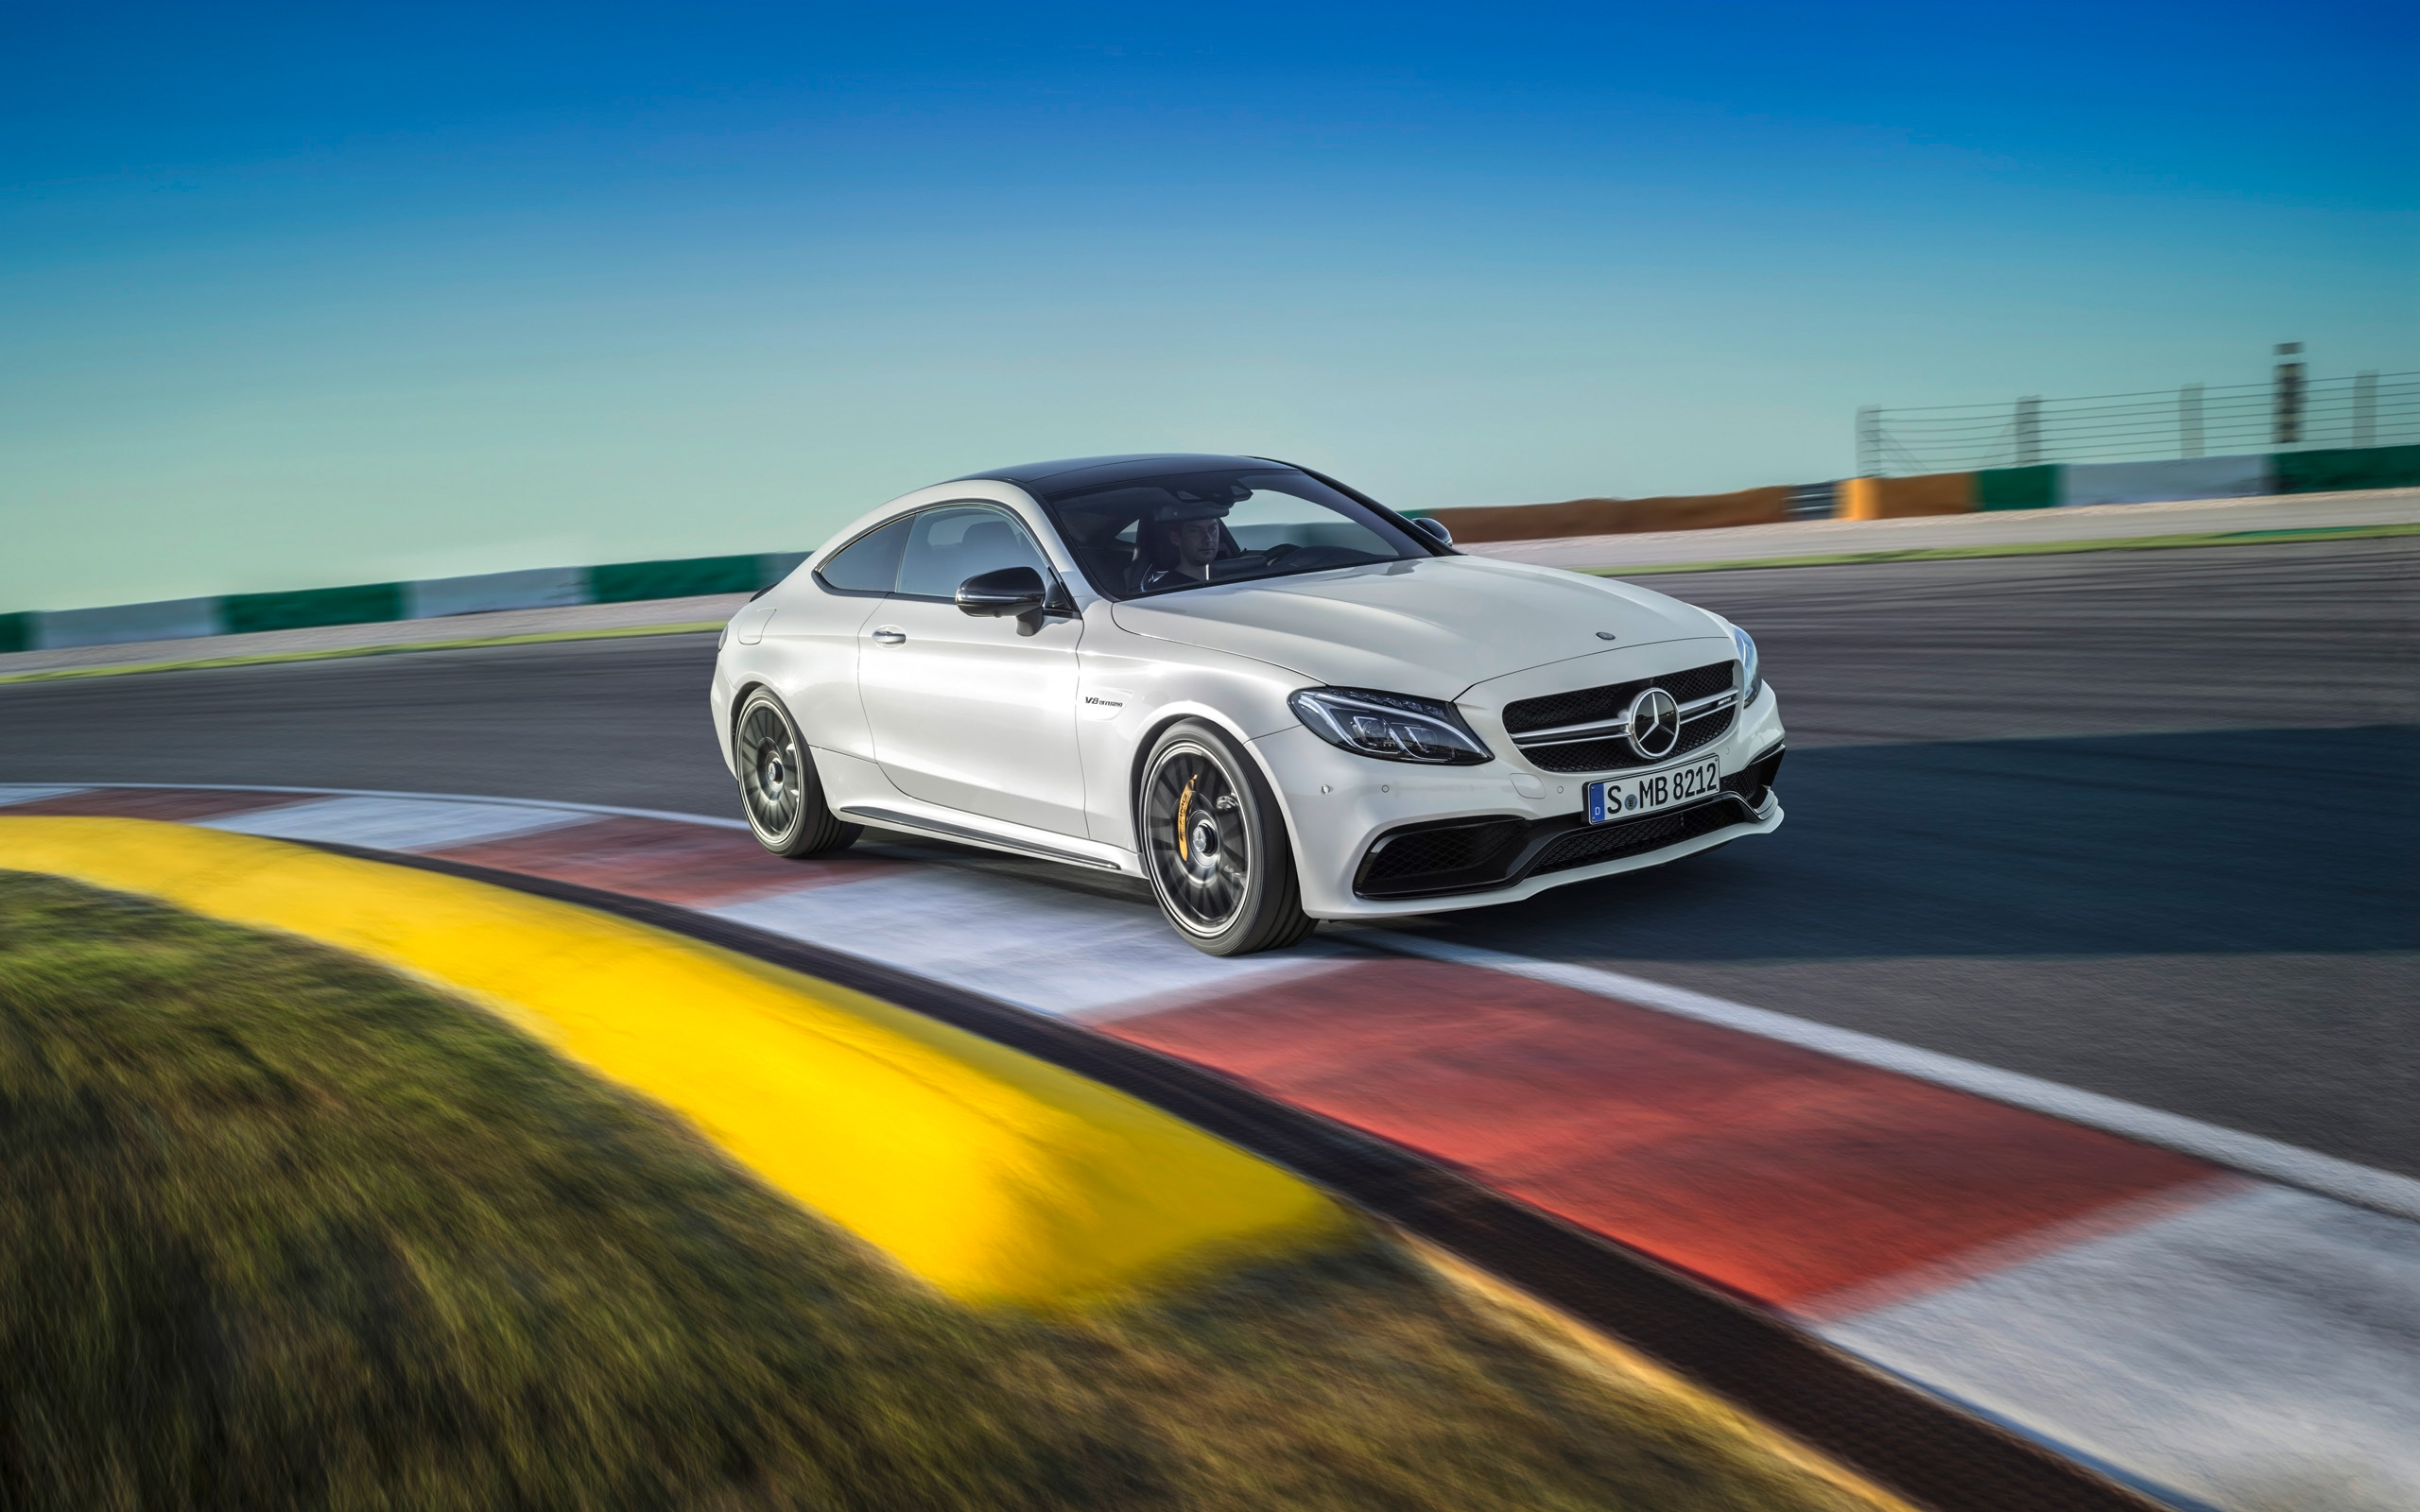 2016 mercedes amg c63 s coupe wallpaper hd car. Black Bedroom Furniture Sets. Home Design Ideas